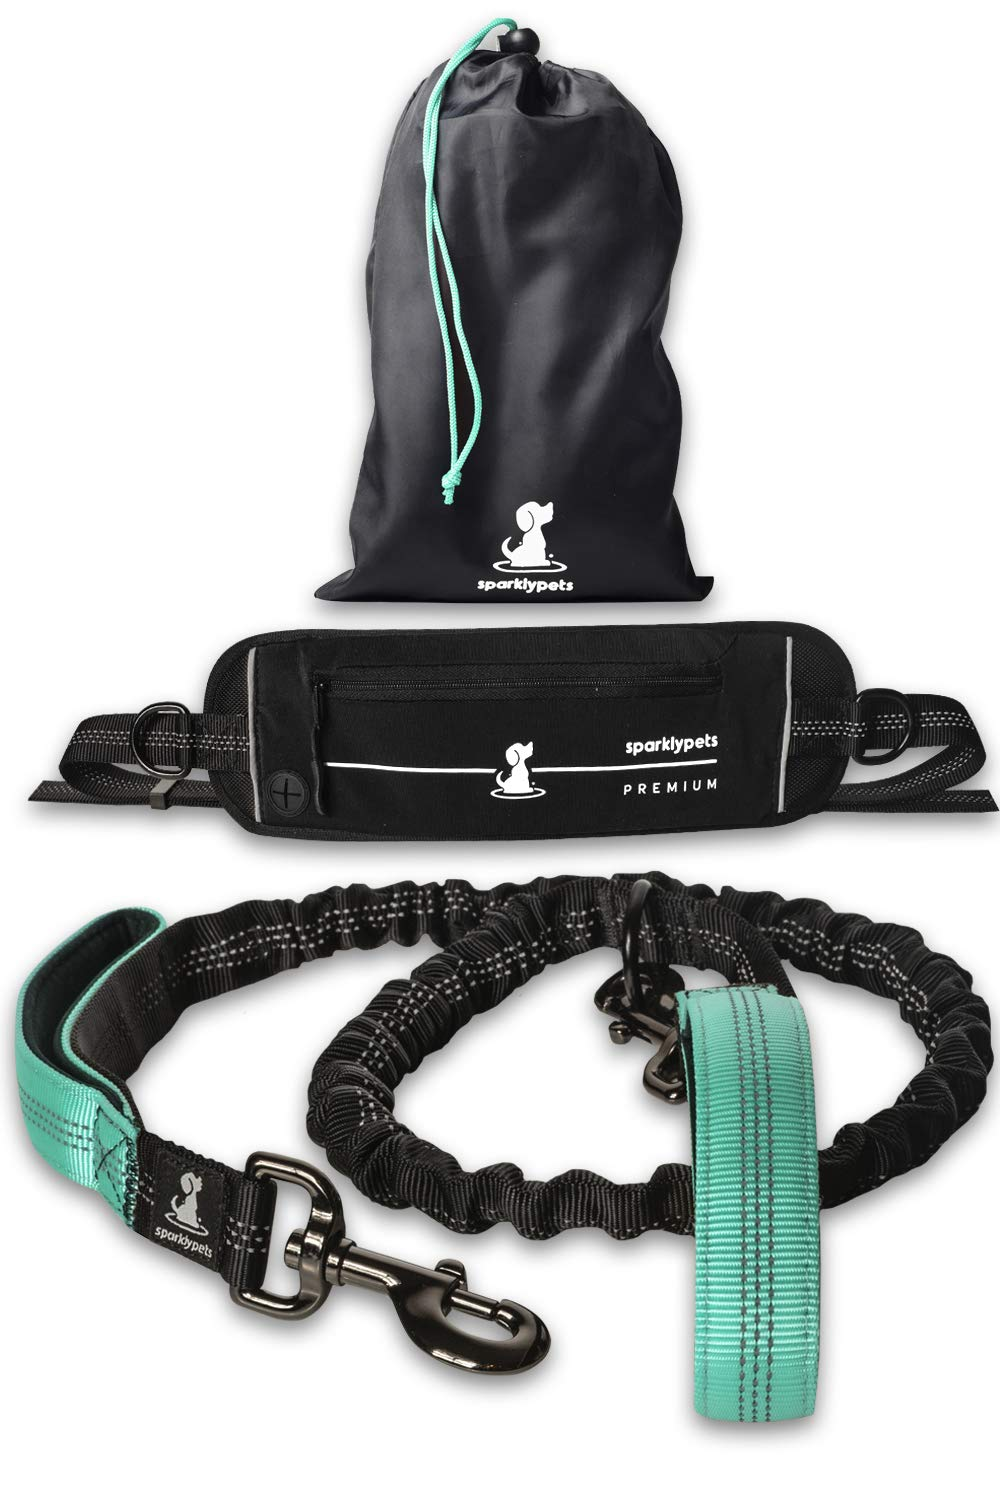 SparklyPets Hands-Free Dog Leash for Medium and Large Dogs - Professional Harness with Reflective Stitches for Training, Walking, Jogging and Running Your Pet127942;Special Edition Premium Teal by SparklyPets